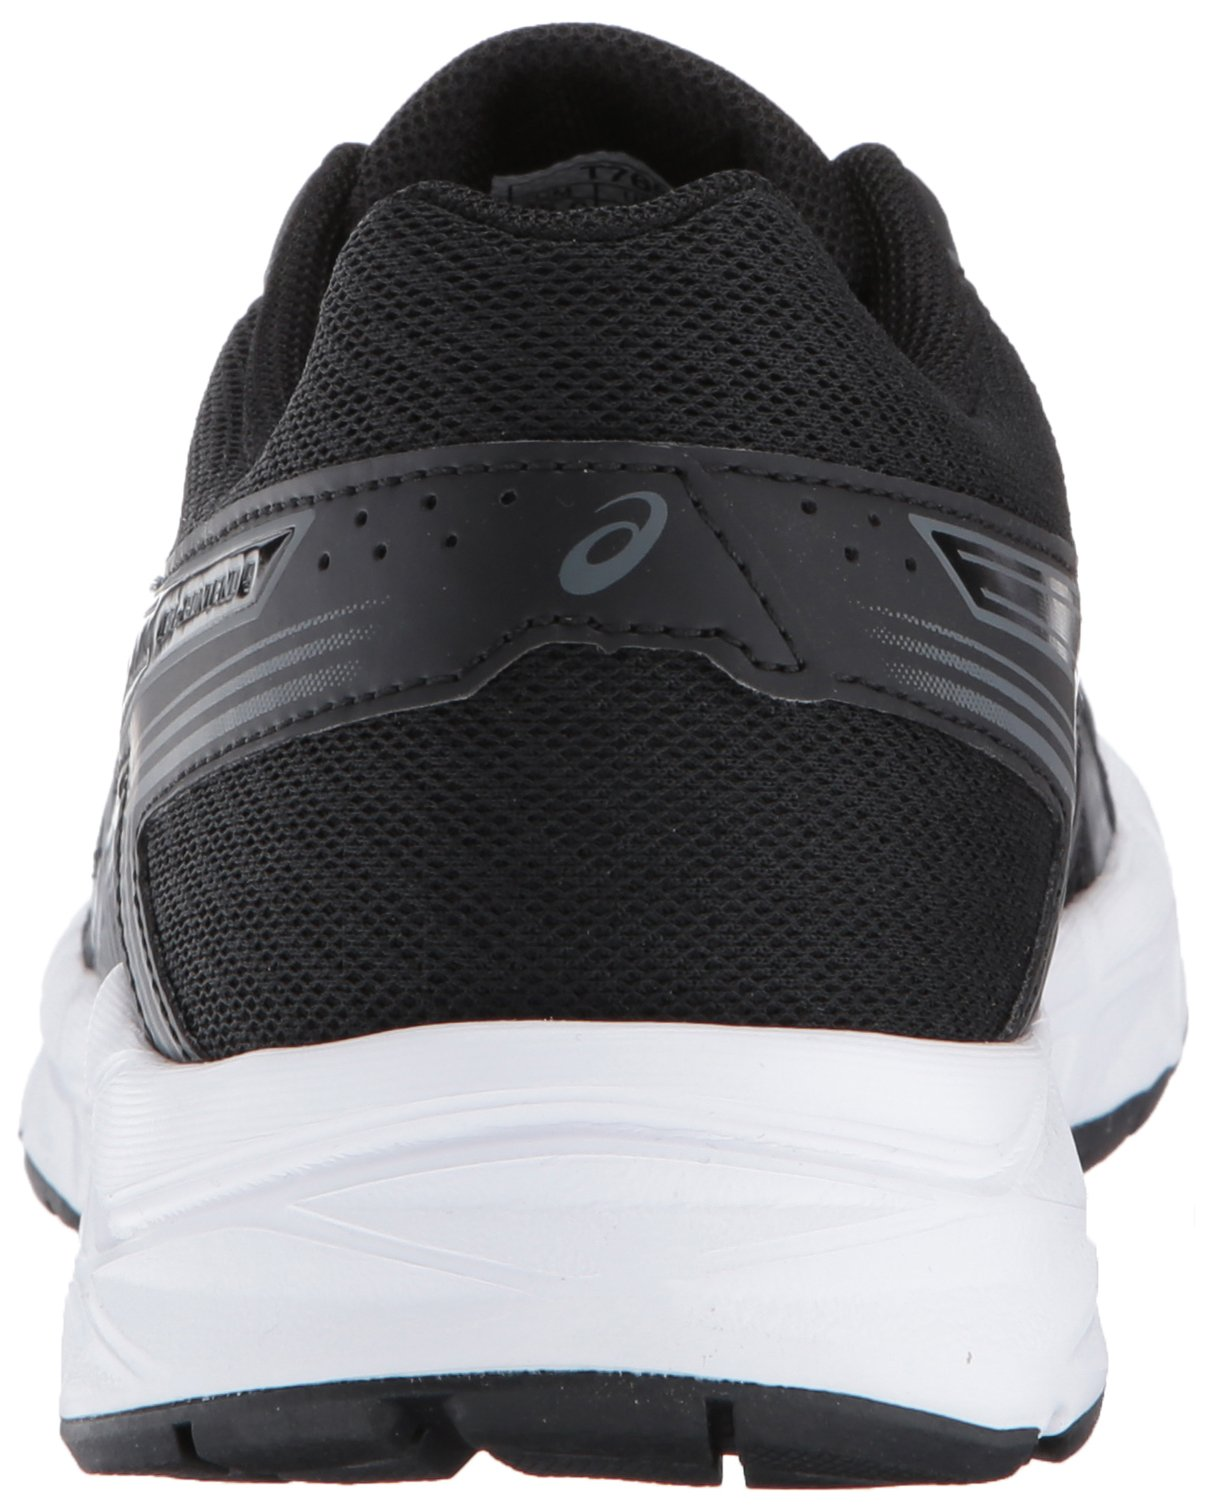 ASICS Womens Gel-Contend 4 Running Shoe, Black/Carbon, 6 D US by ASICS (Image #2)